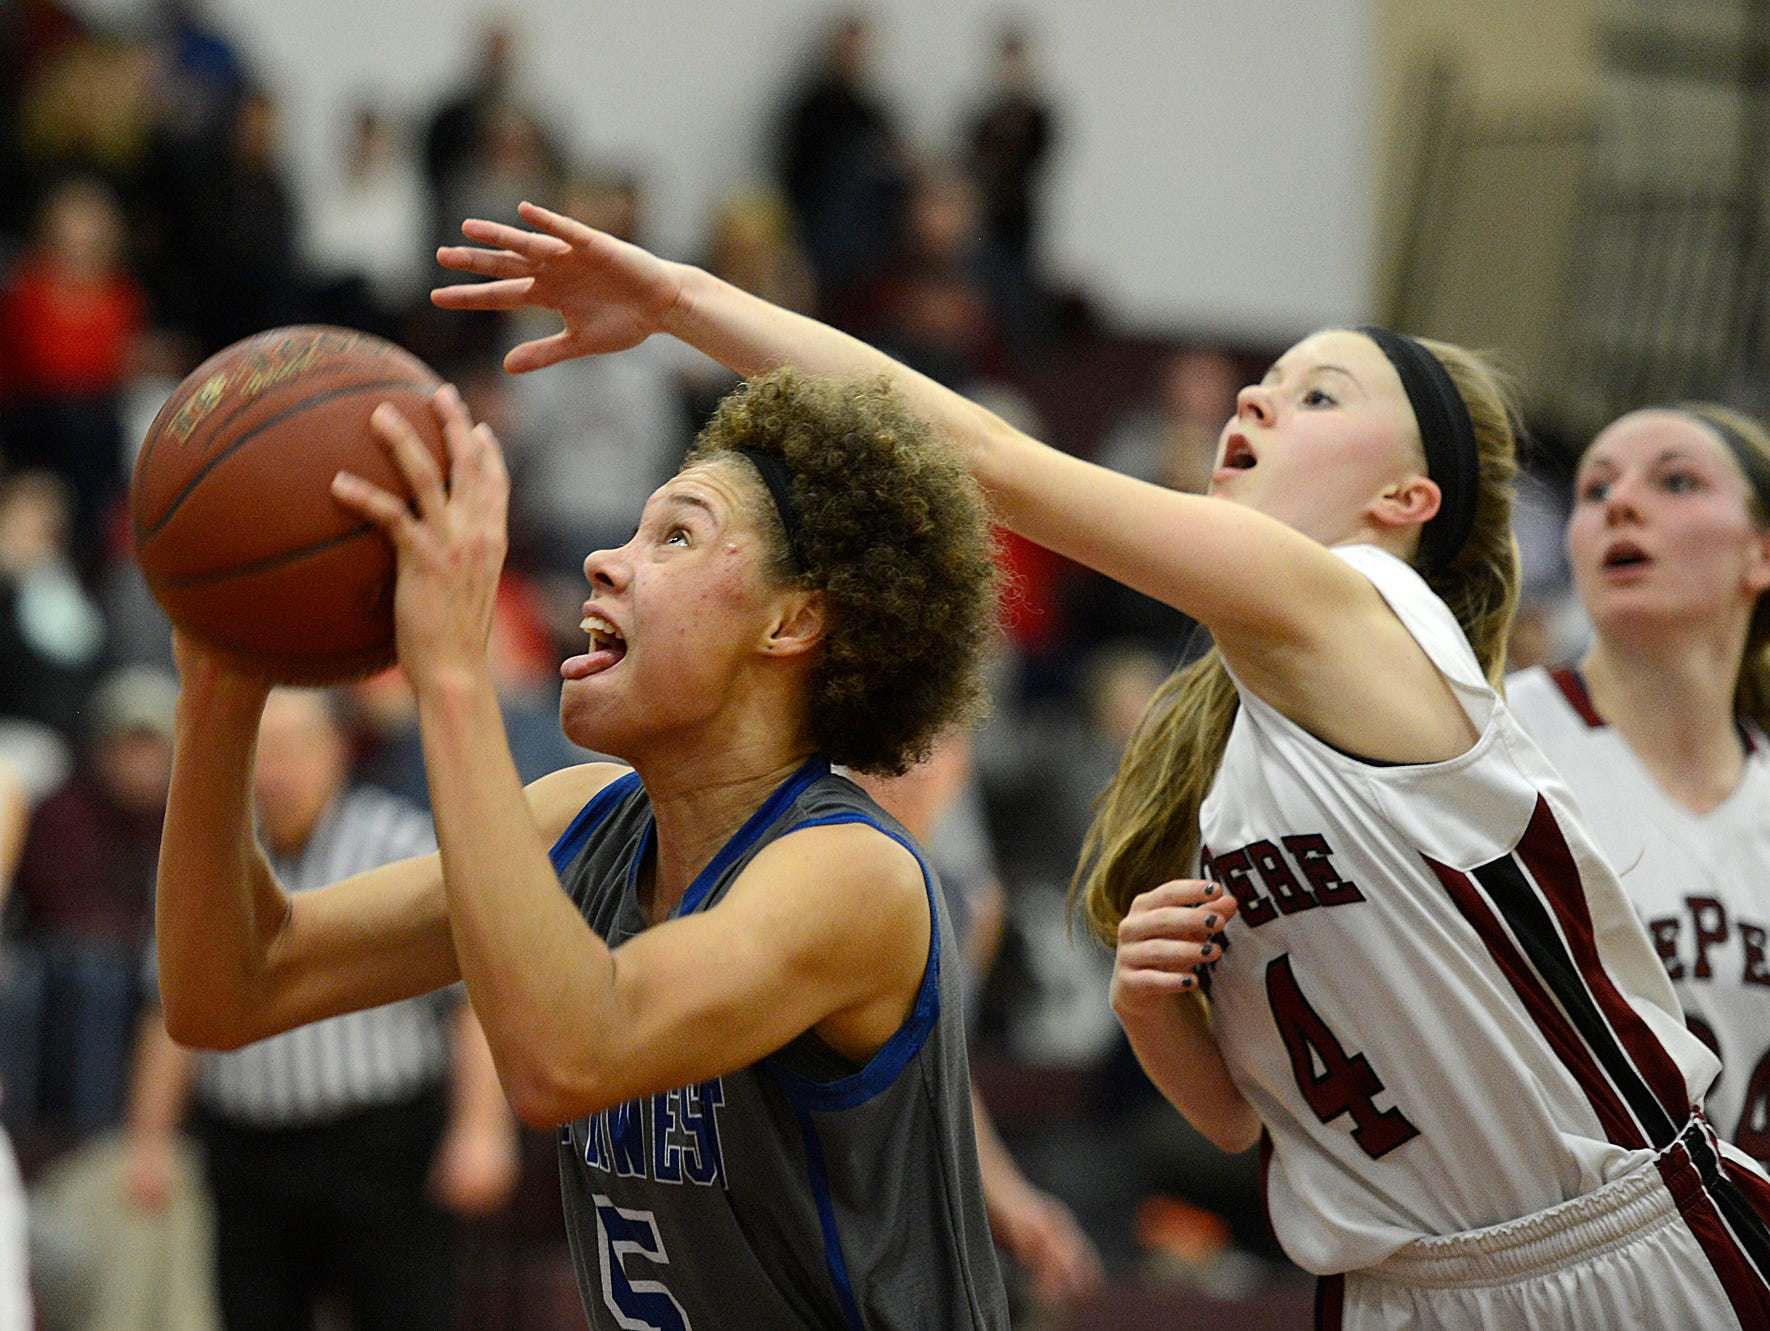 Green Bay Southwest's Natisha Hiedeman (5) drives to the basket past De Pere's Alexis Mashl (4) in the fourth quarter at De Pere High School.